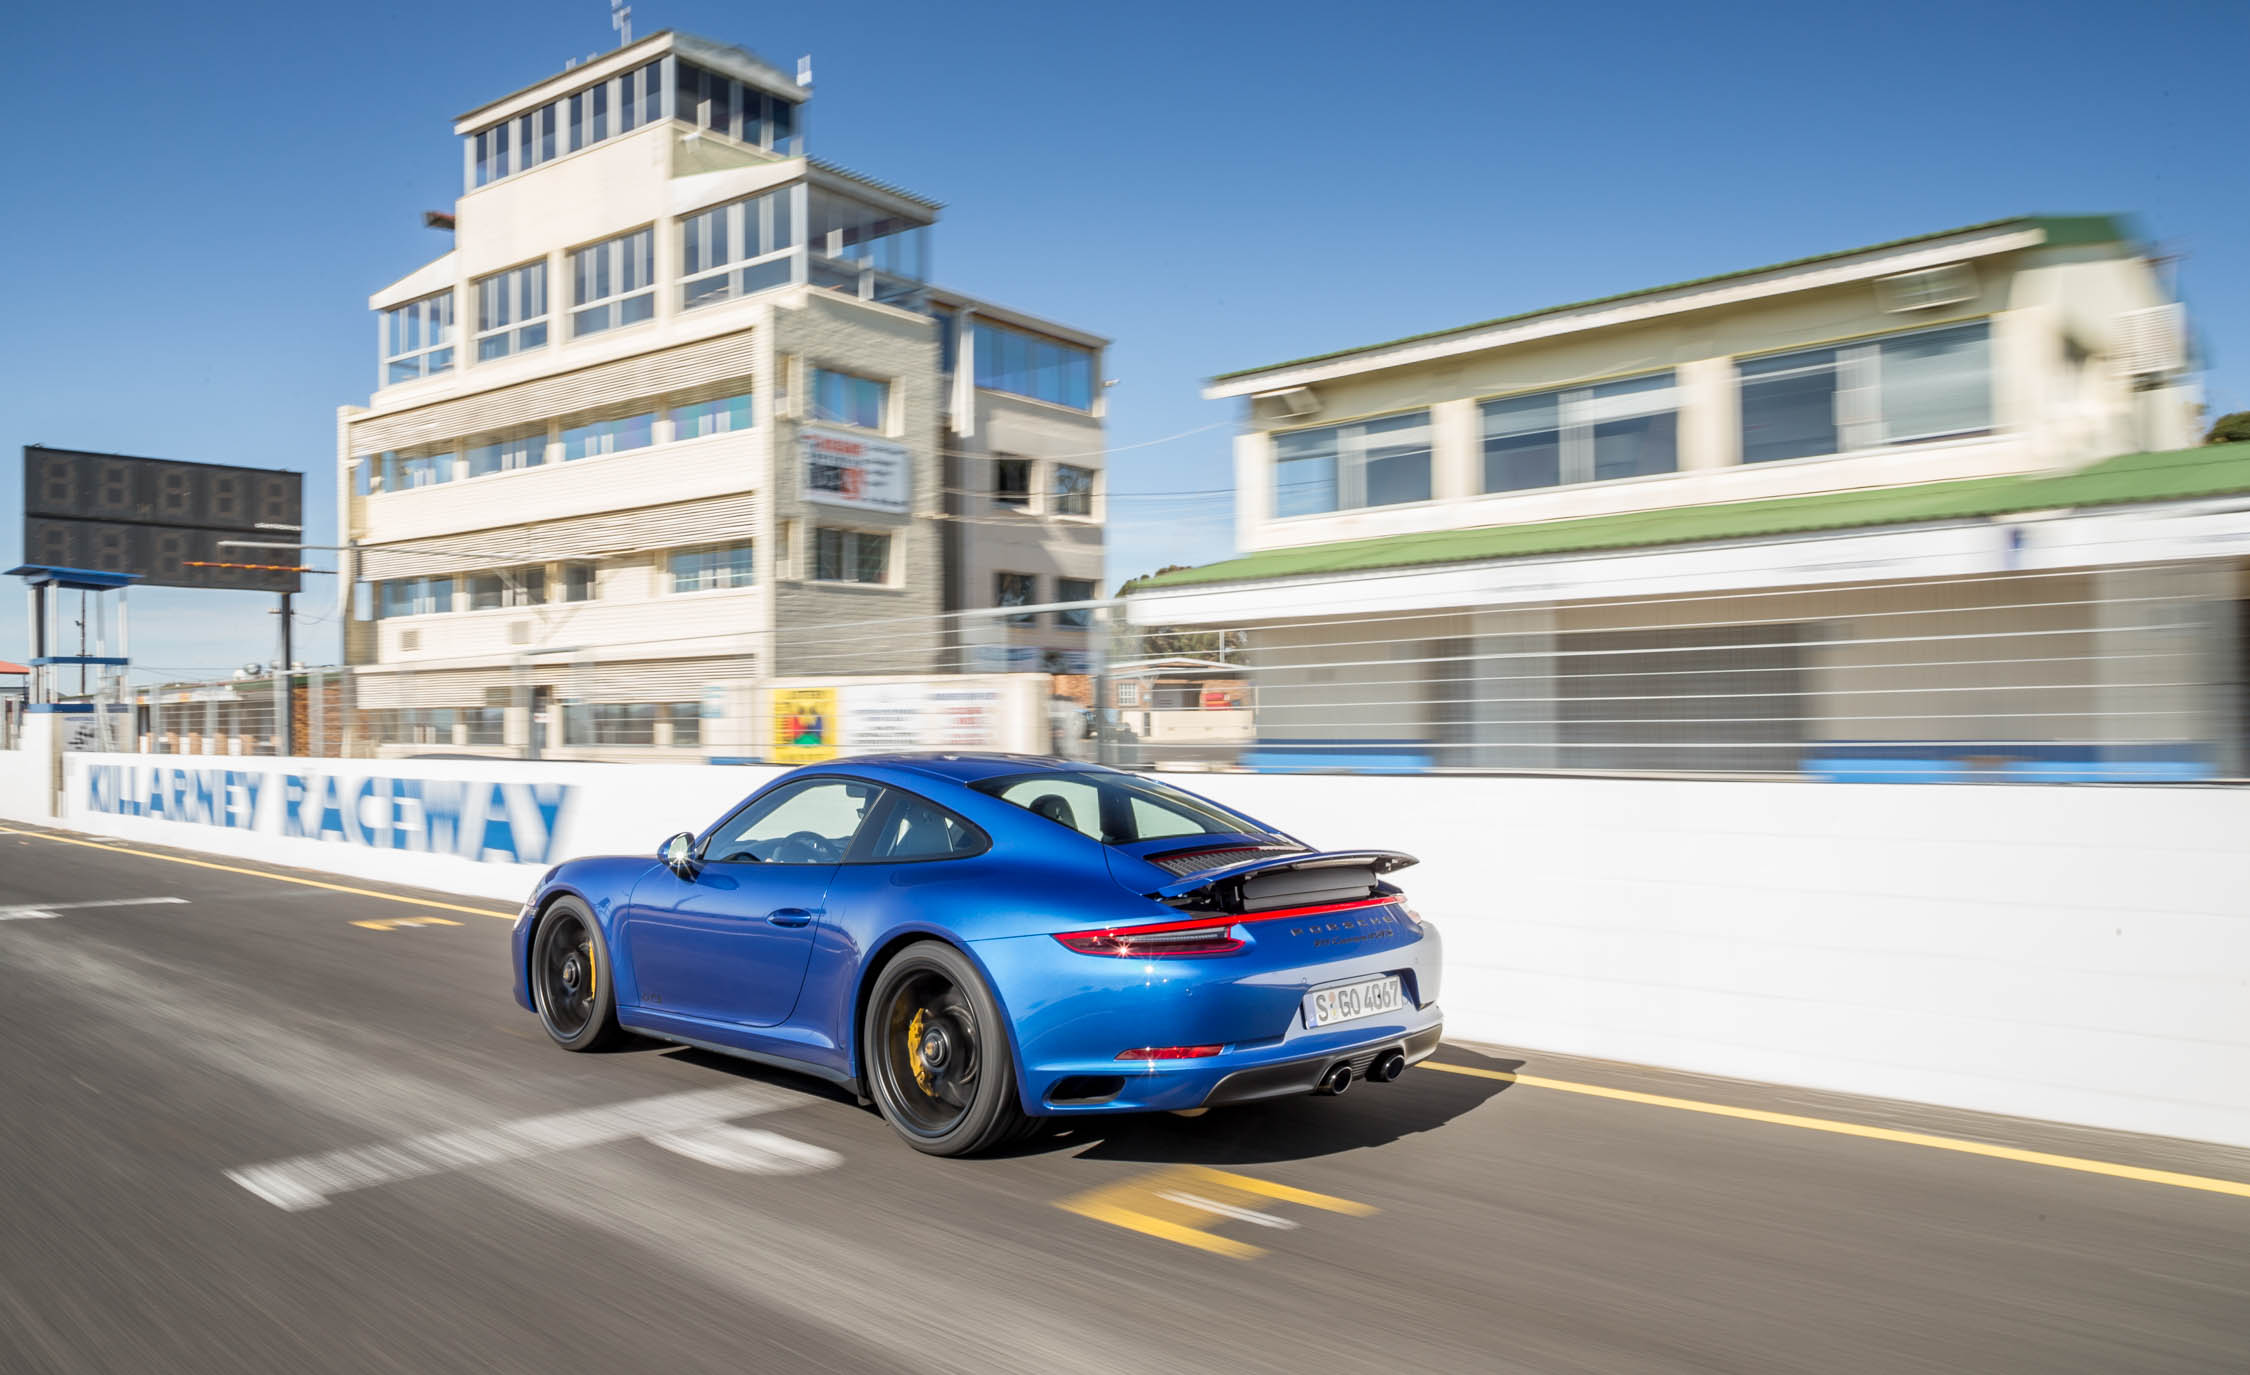 2017 Porsche 911 Carrera 4 GTS Coupe Blue Metallic Rear And Side View (Photo 17 of 97)